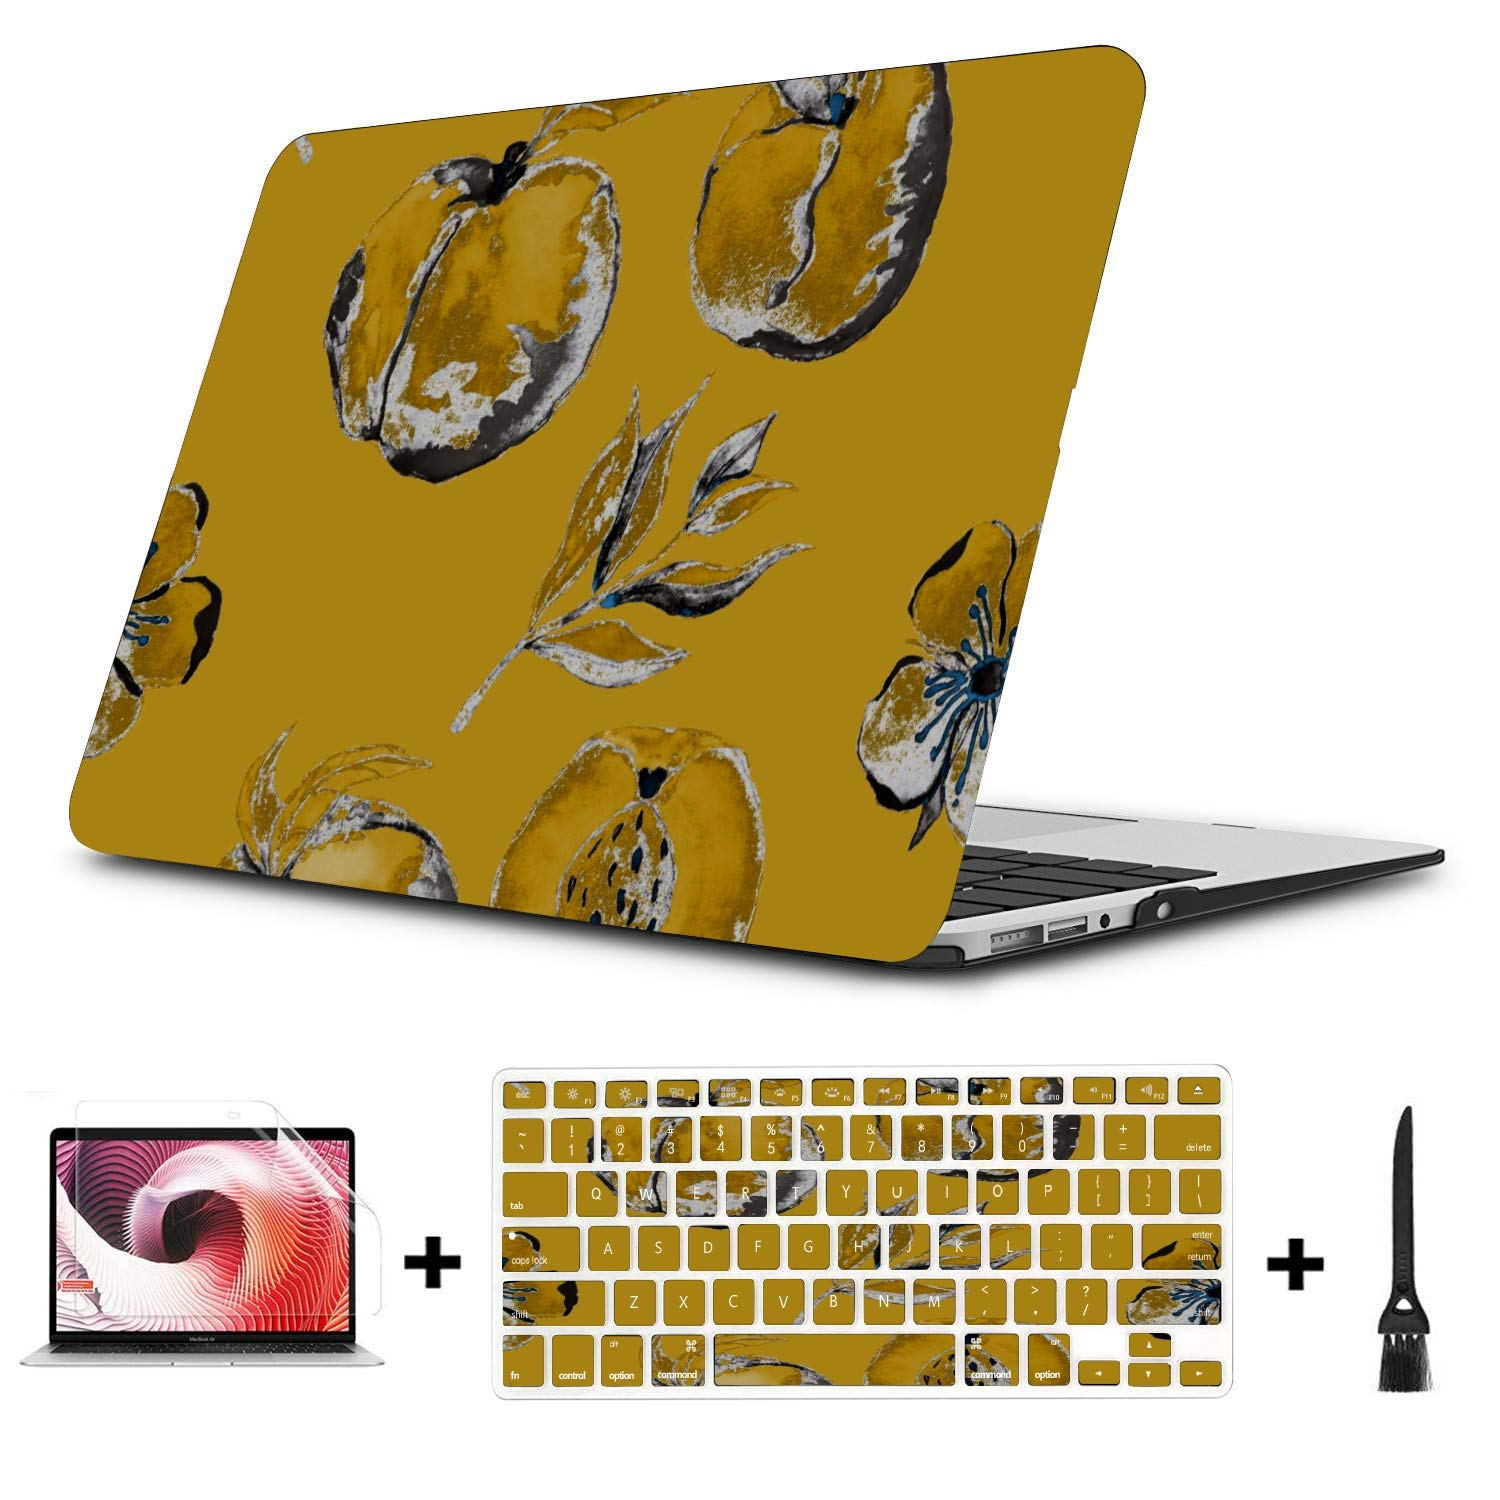 MacBook Case 13 Inch Summer Sweet Fruit Yellow Peach Canned Plastic Hard Shell Compatible Mac Air 11 Pro 13 15 Mac Pro Case Protection for MacBook 2016-2019 Version